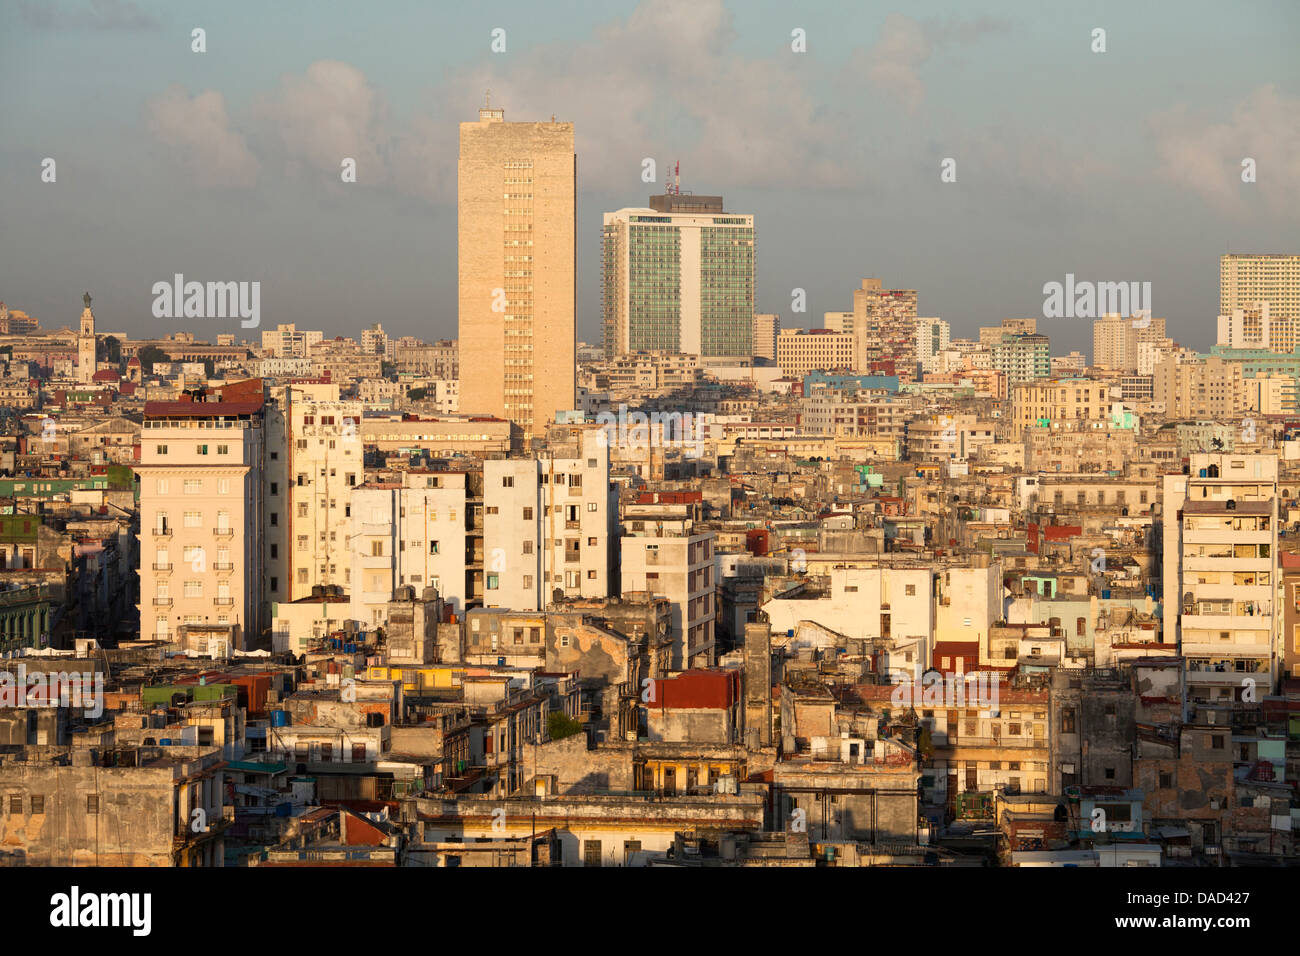 View over Havana Centro showing the city's dilapidated buildings, from the restaurant of Hotel Seville, Havana - Stock Image